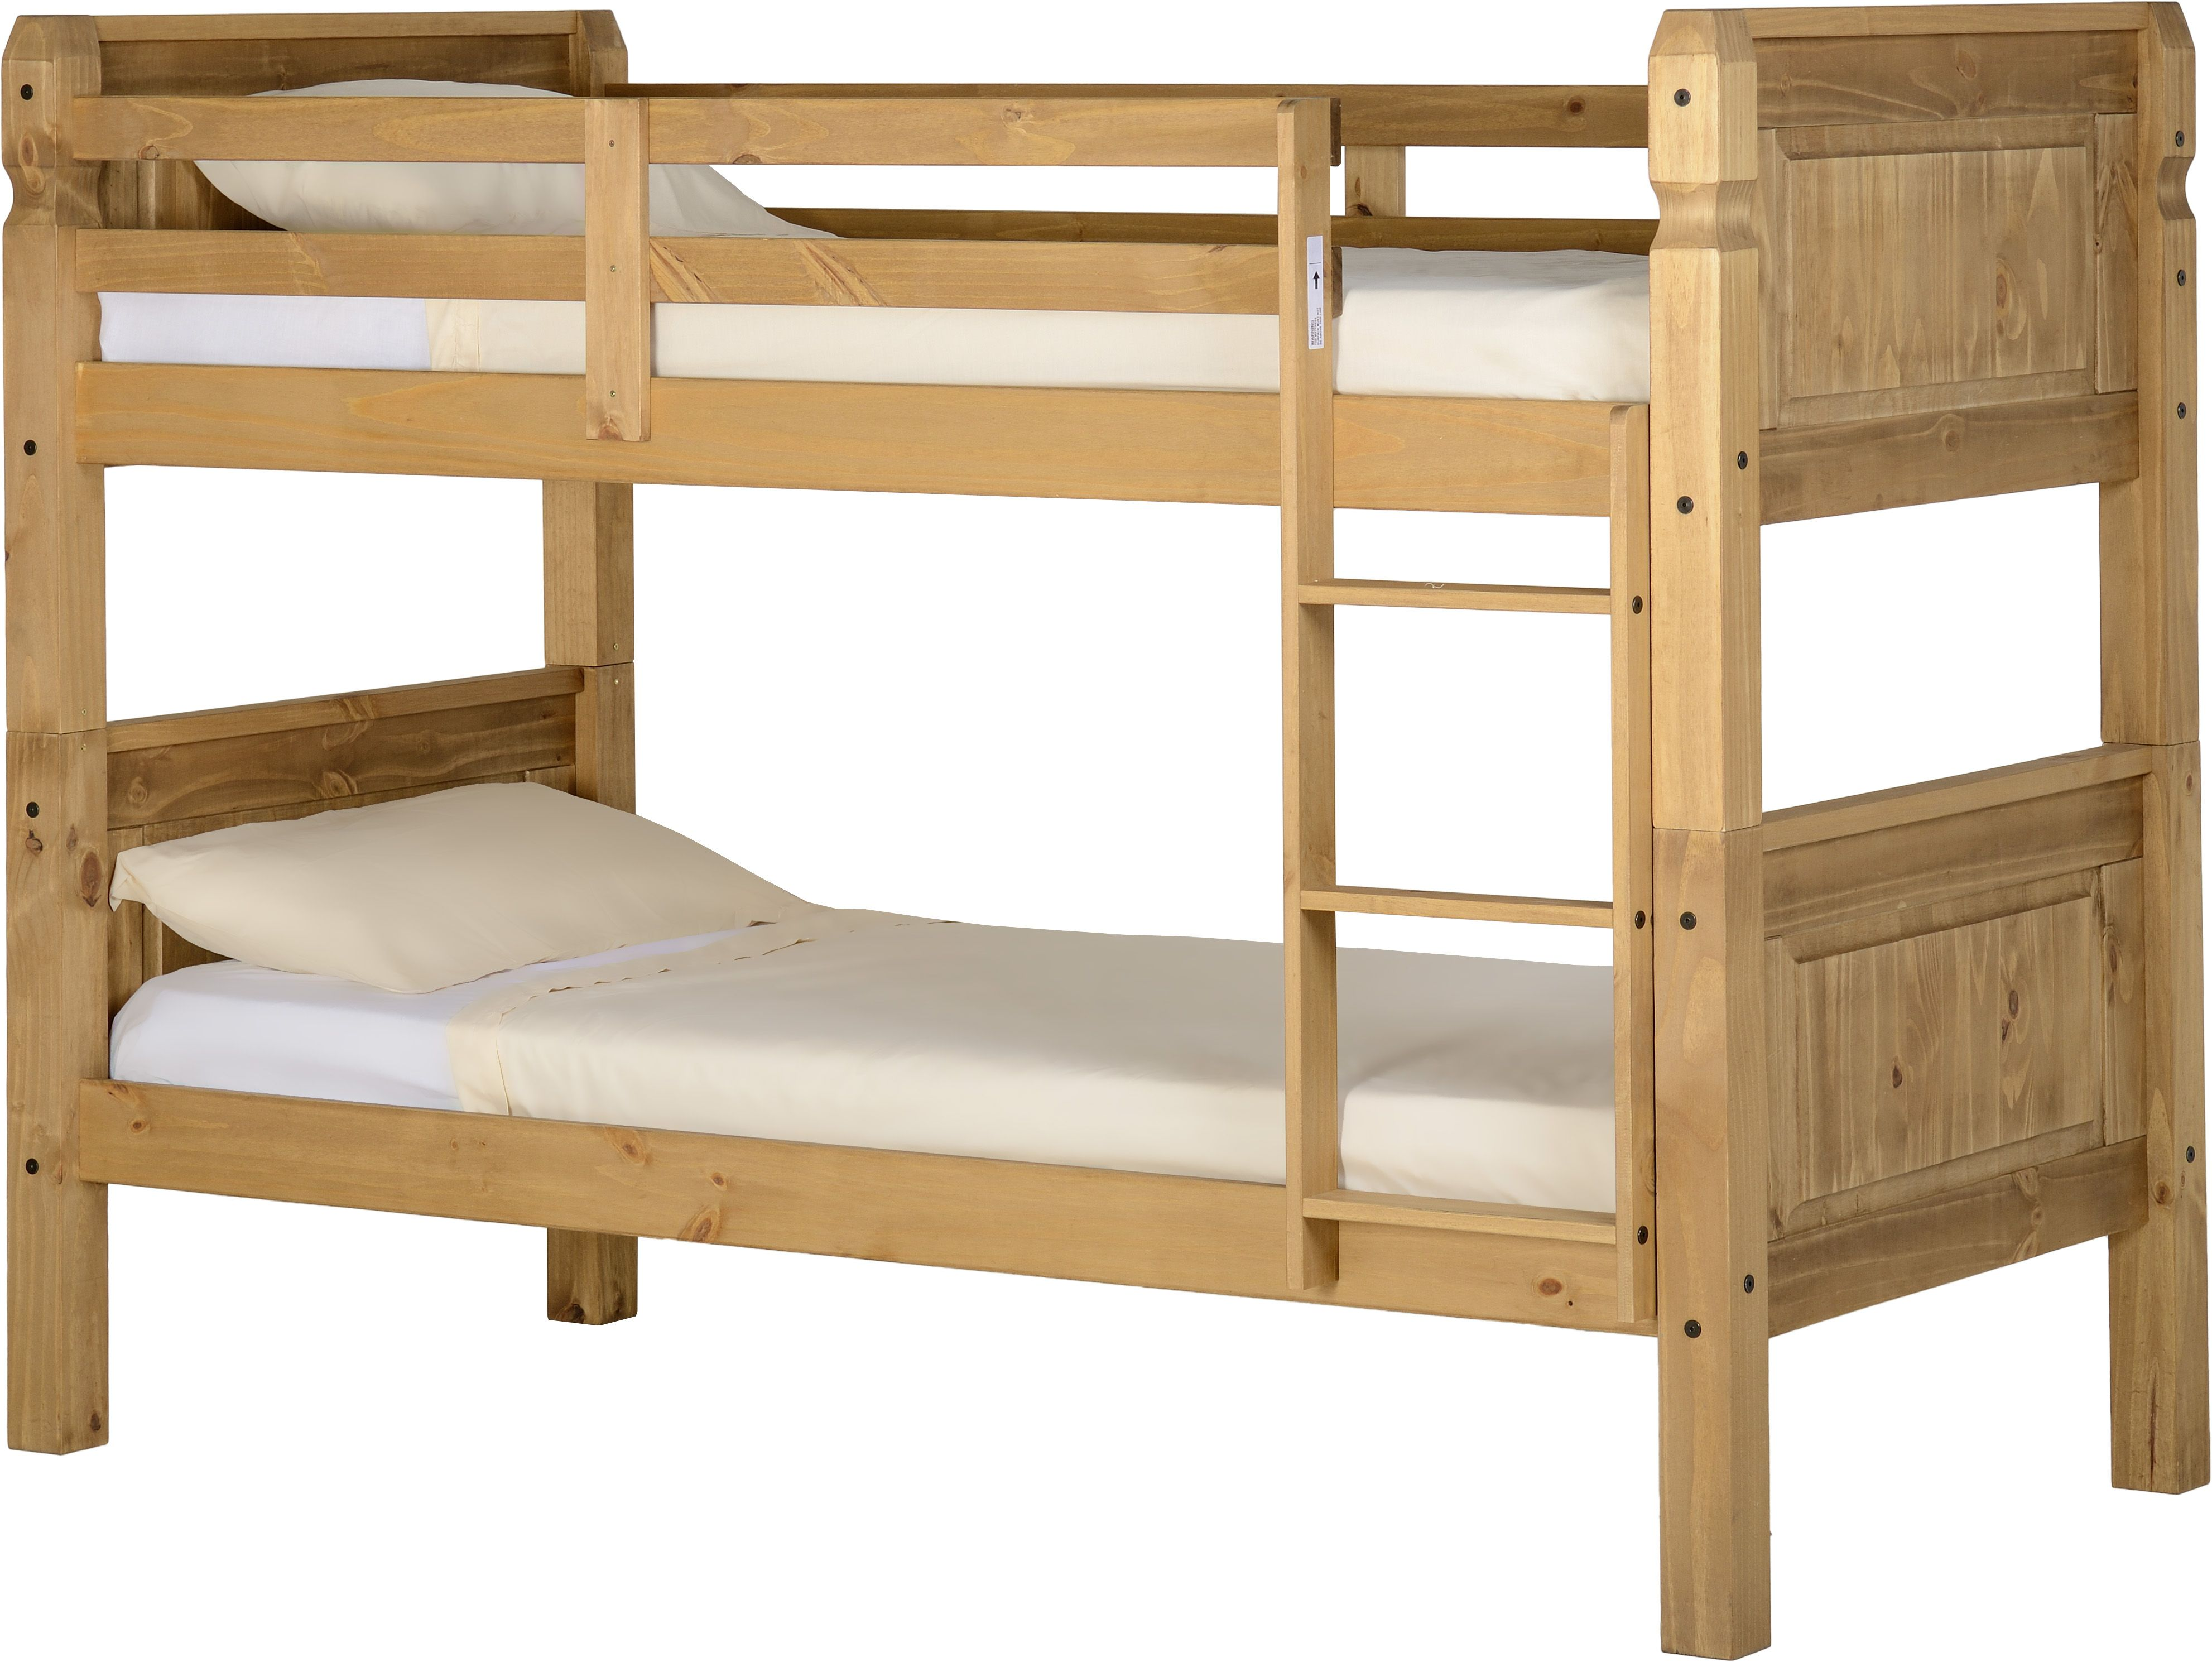 This Corona 3 Bunk Bed In Distressed Waxed Pine Is Now Available From Wrexham Warehouse Furniture Single Bunk Bed Bunk Beds Pine Bunk Beds